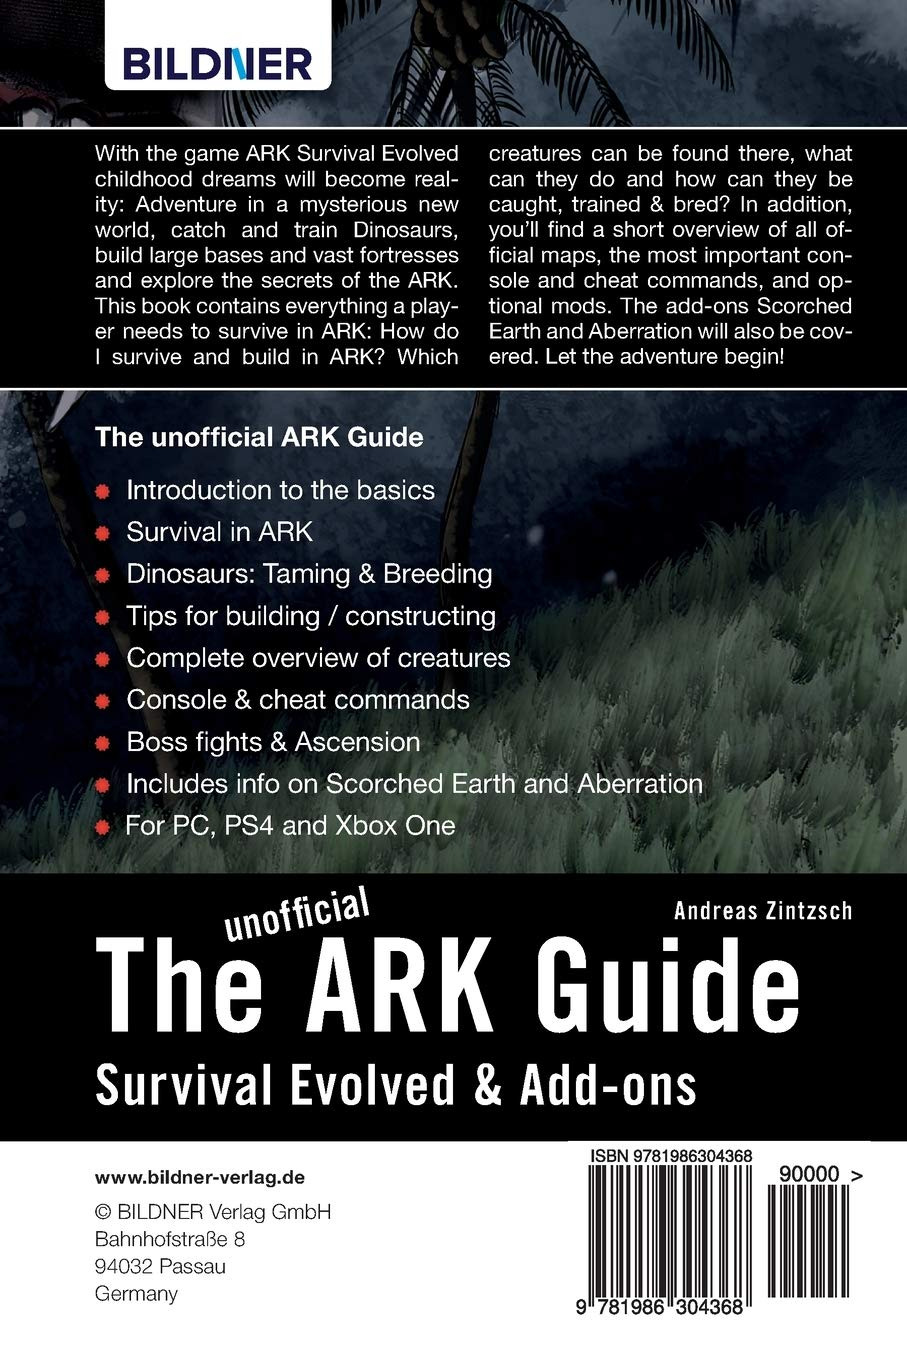 The unofficial ARK Guide: Survival Evolved & Add-ons: Amazon.es ...